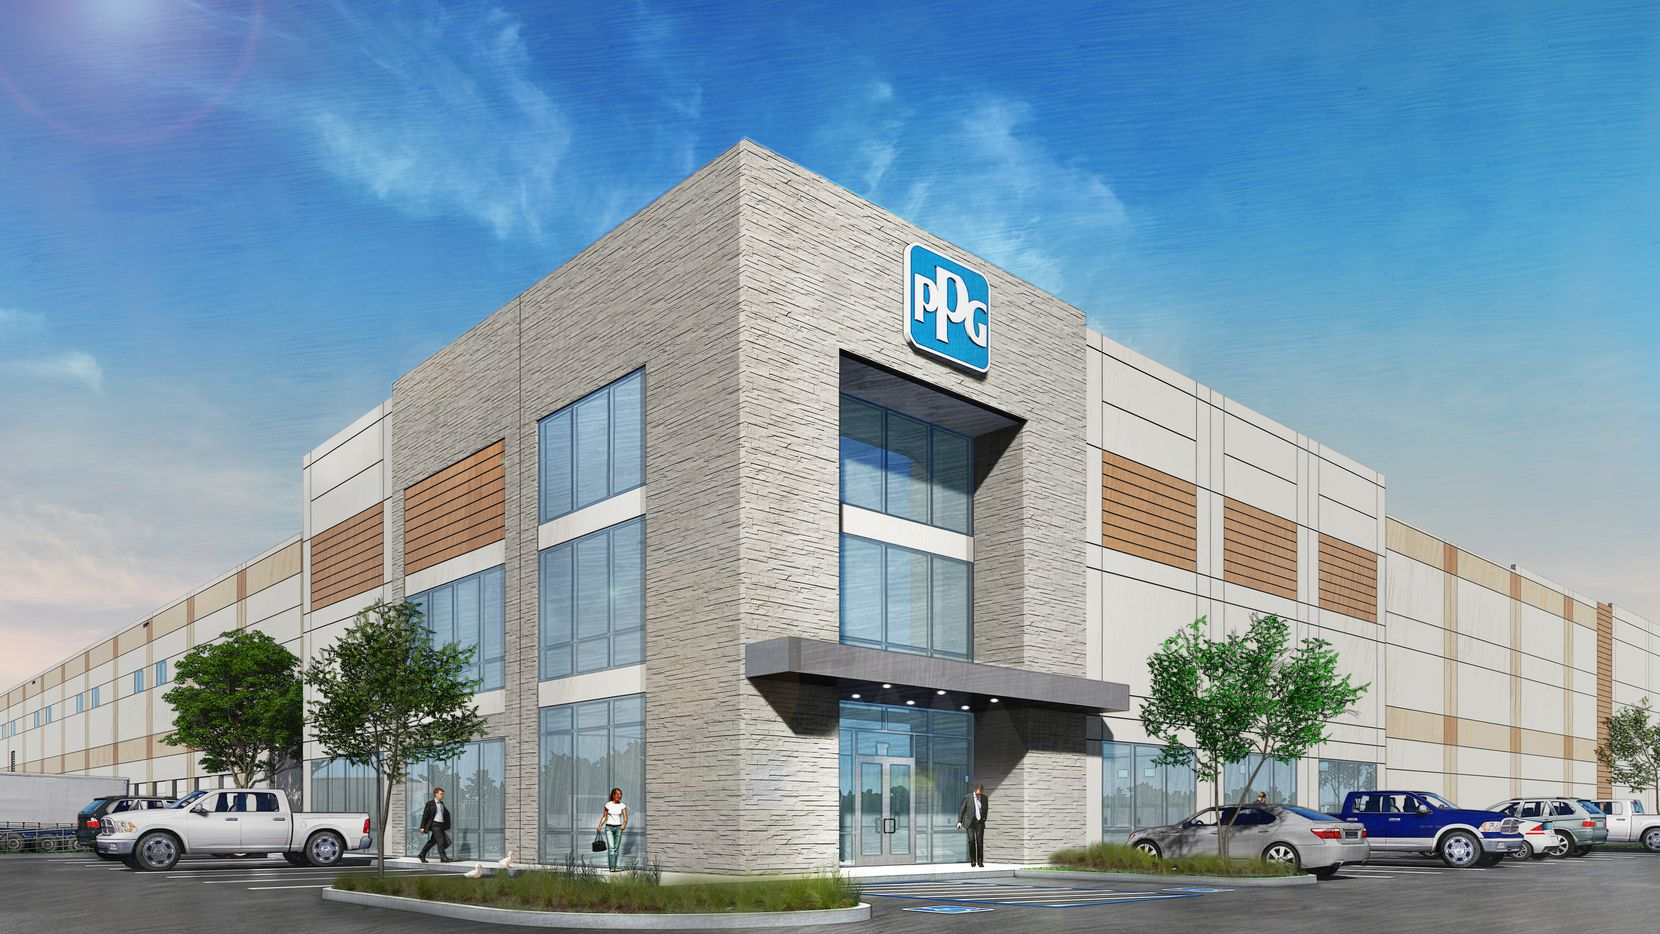 Developer Duke Realty built the distribution center in Flower Mound for PPG's architectural coatings div